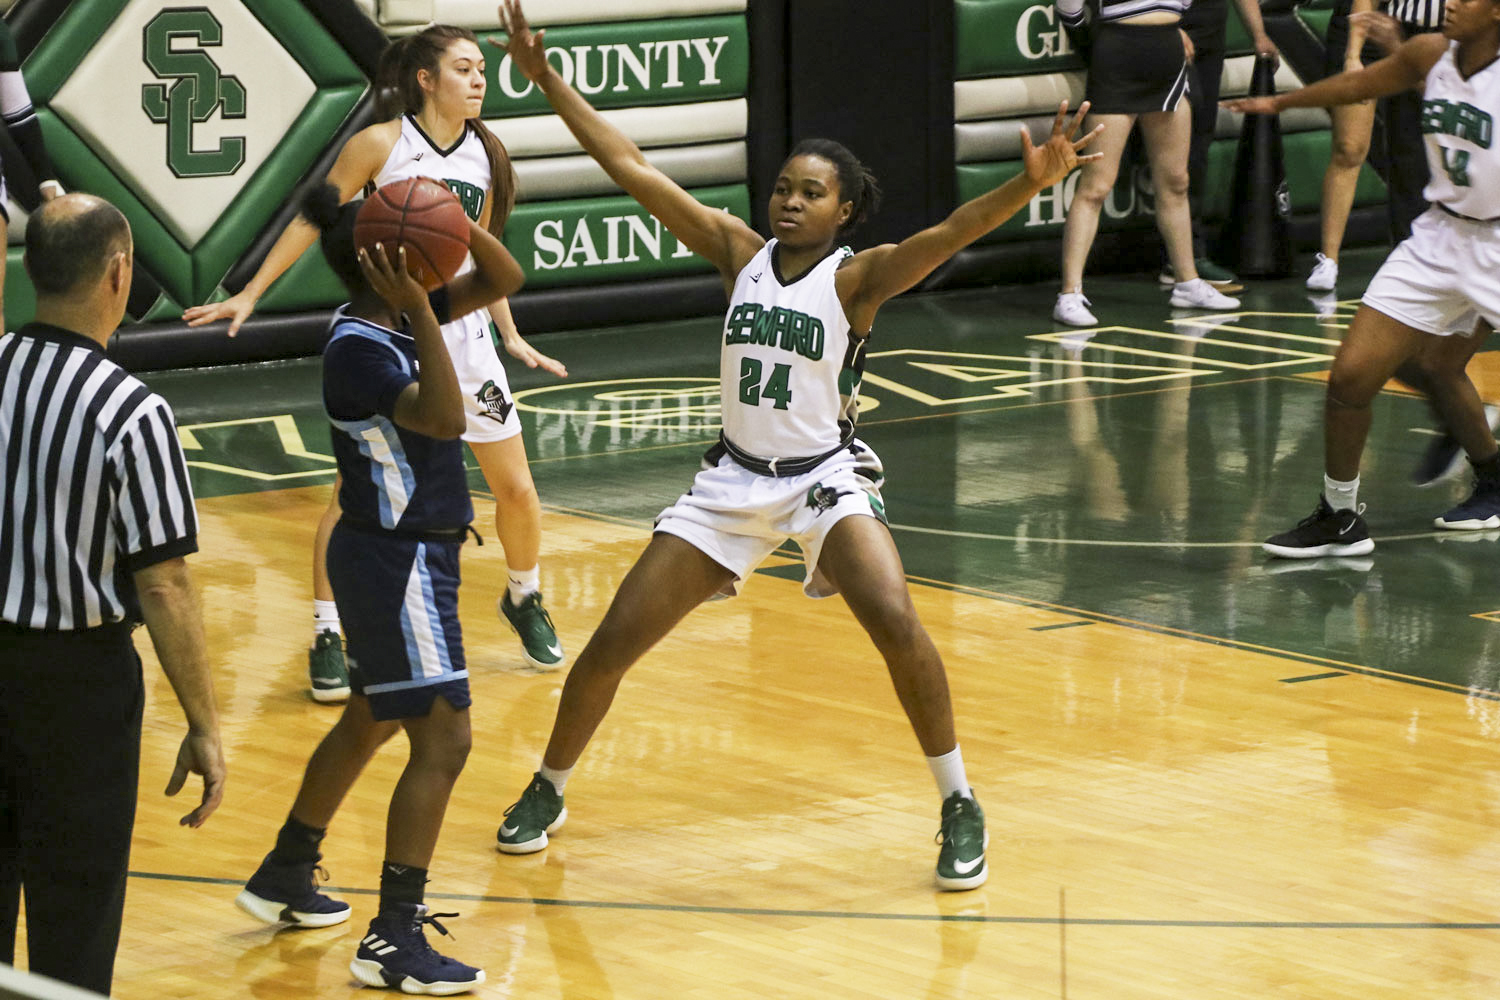 Vonda Cuamba plays good defense to help the Lady Saints defeat the Lady Trojans, 65-60. The win extended their win streak to 19 in a row.